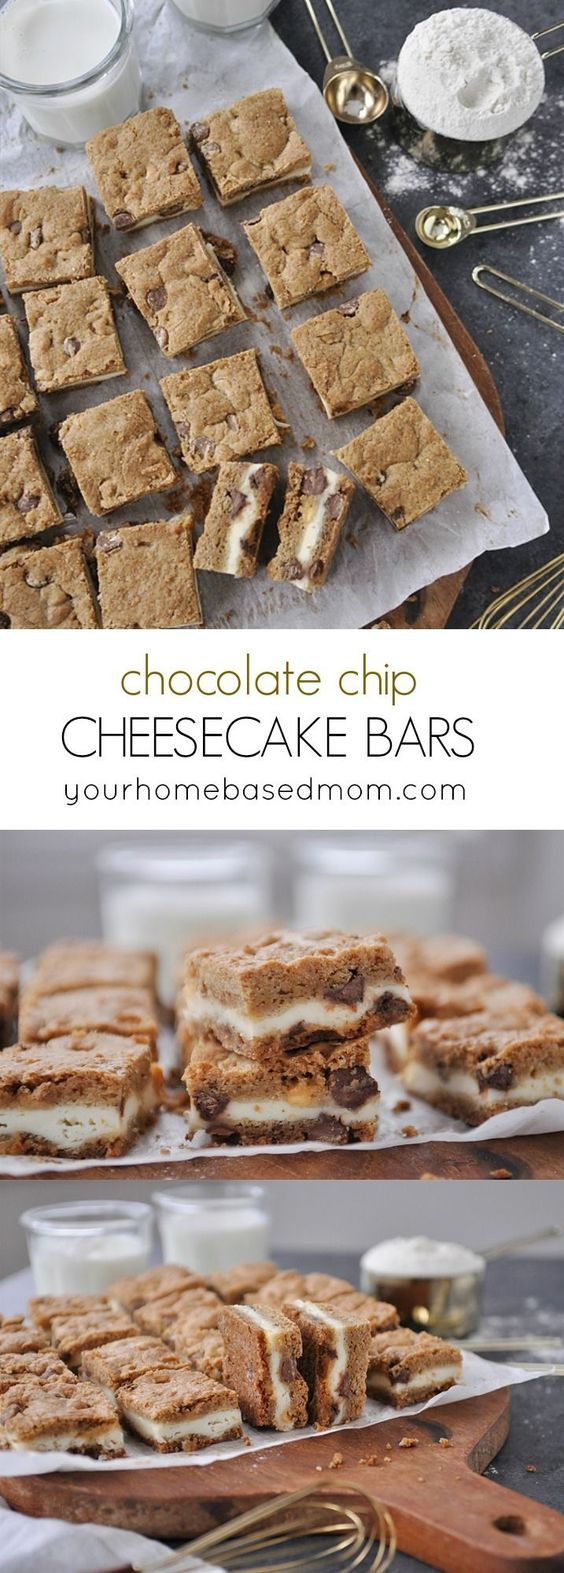 Chocolate Chip Cheesecake Bars Recipe - These are the perfect combo of two of your favorite treats.